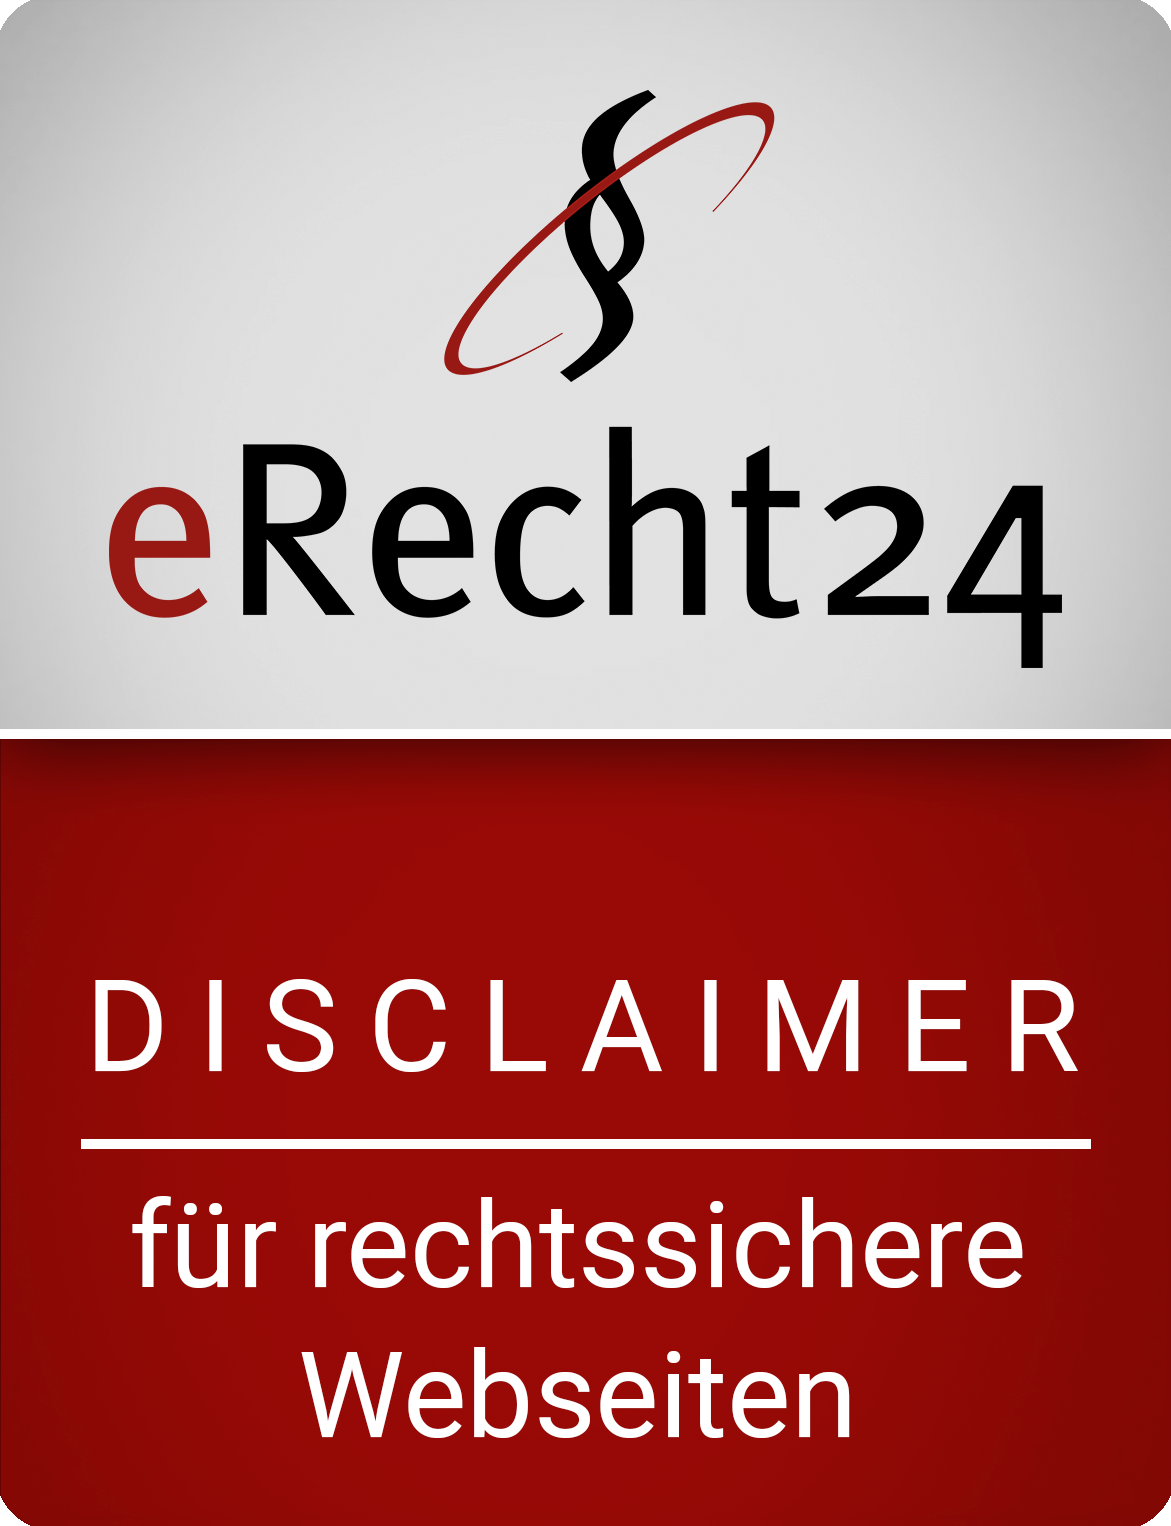 erecht24 siegel disclaimer rot gross